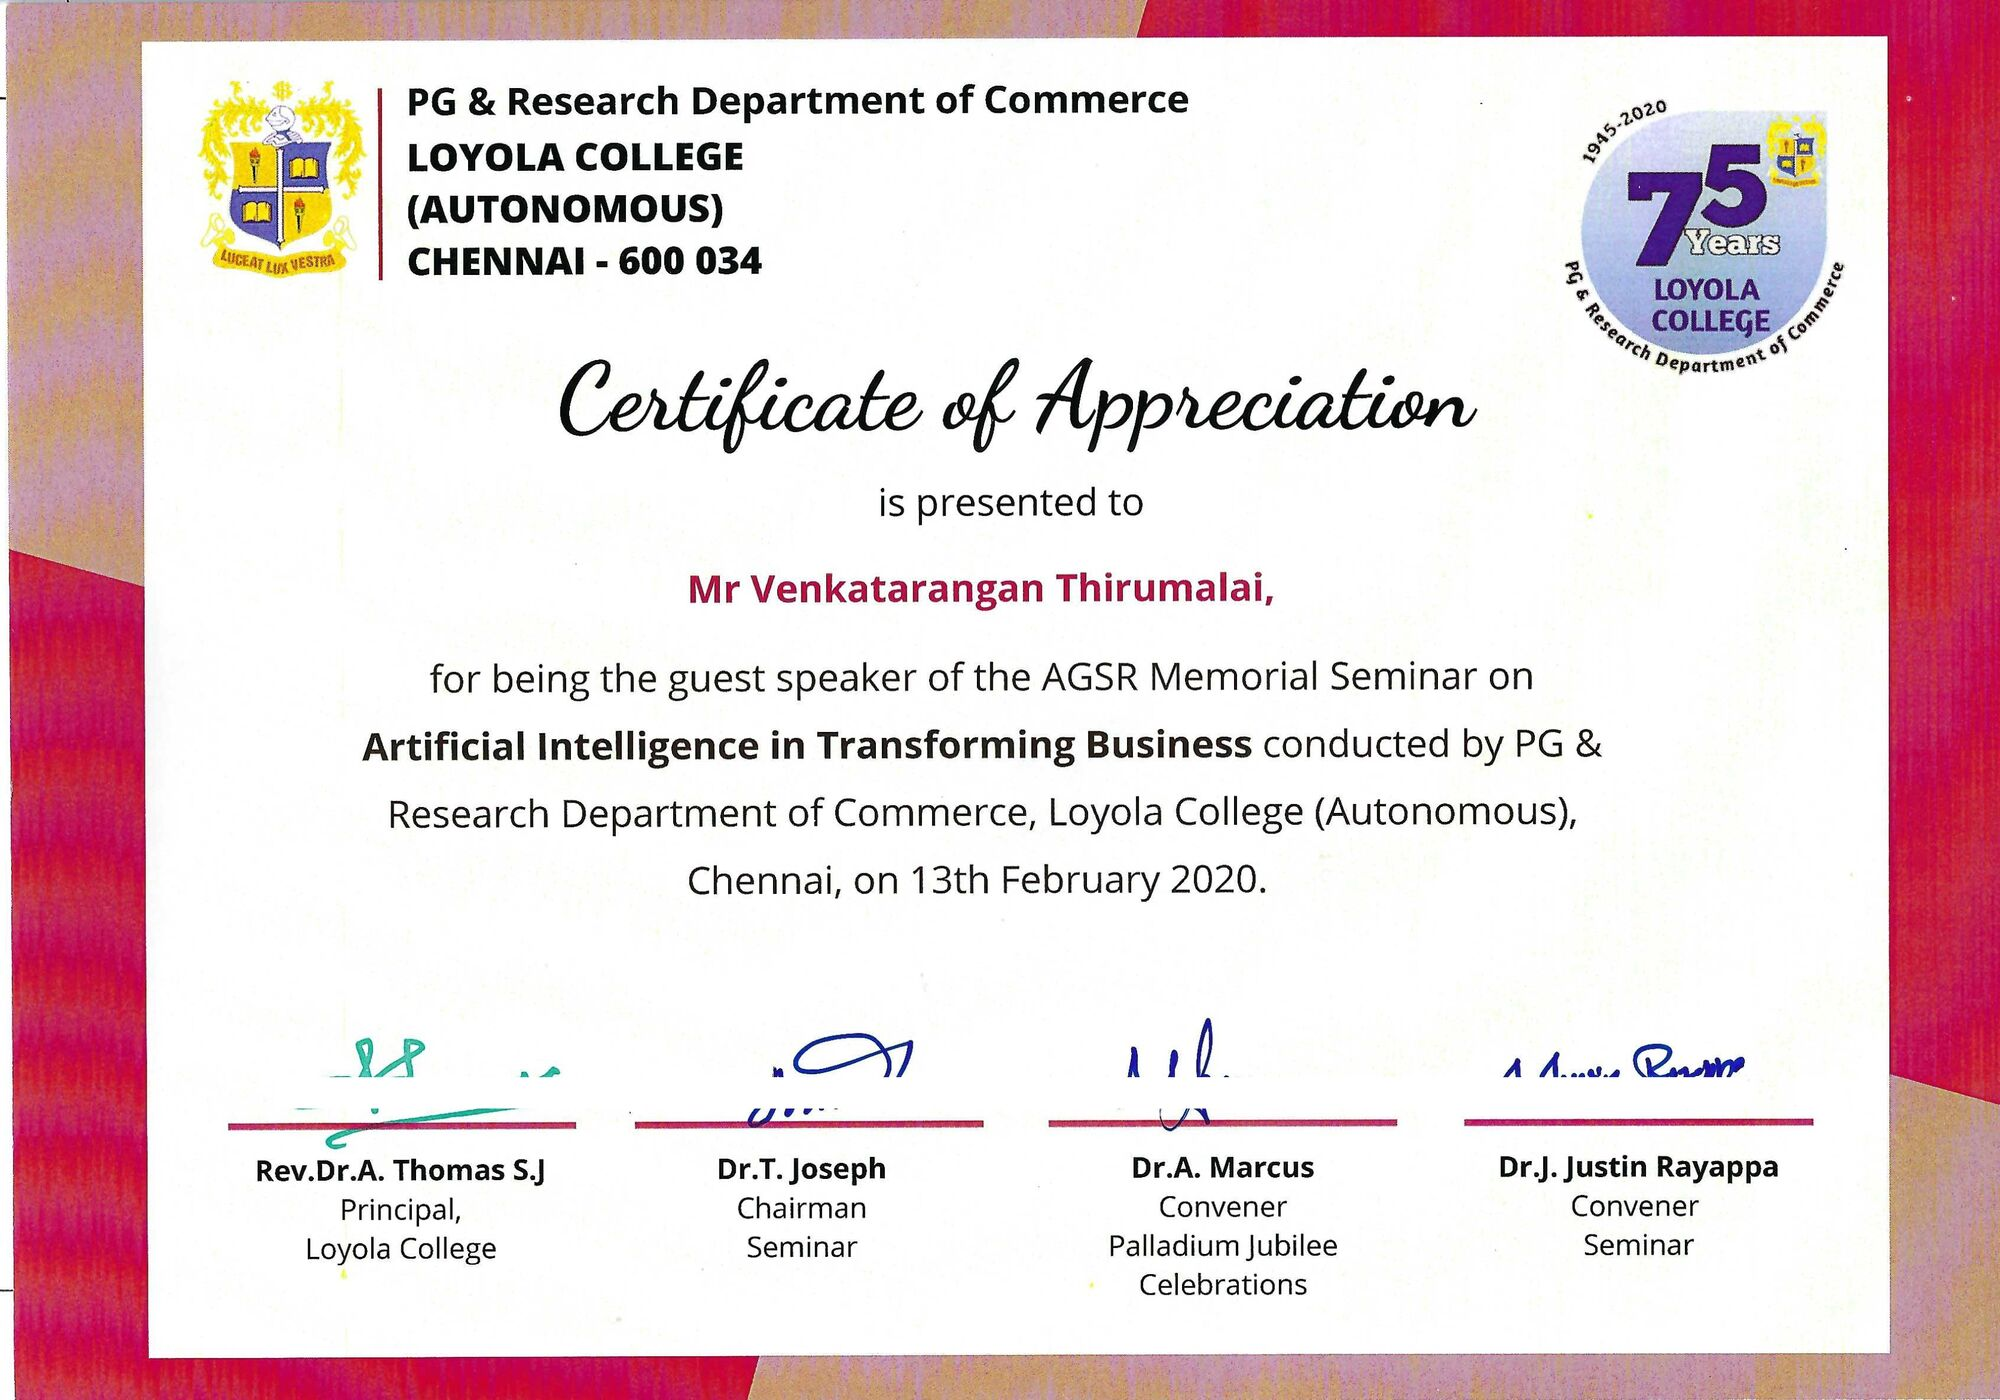 I didn't expect this, but I was gifted this Certificate of Appreciation by Loyola College